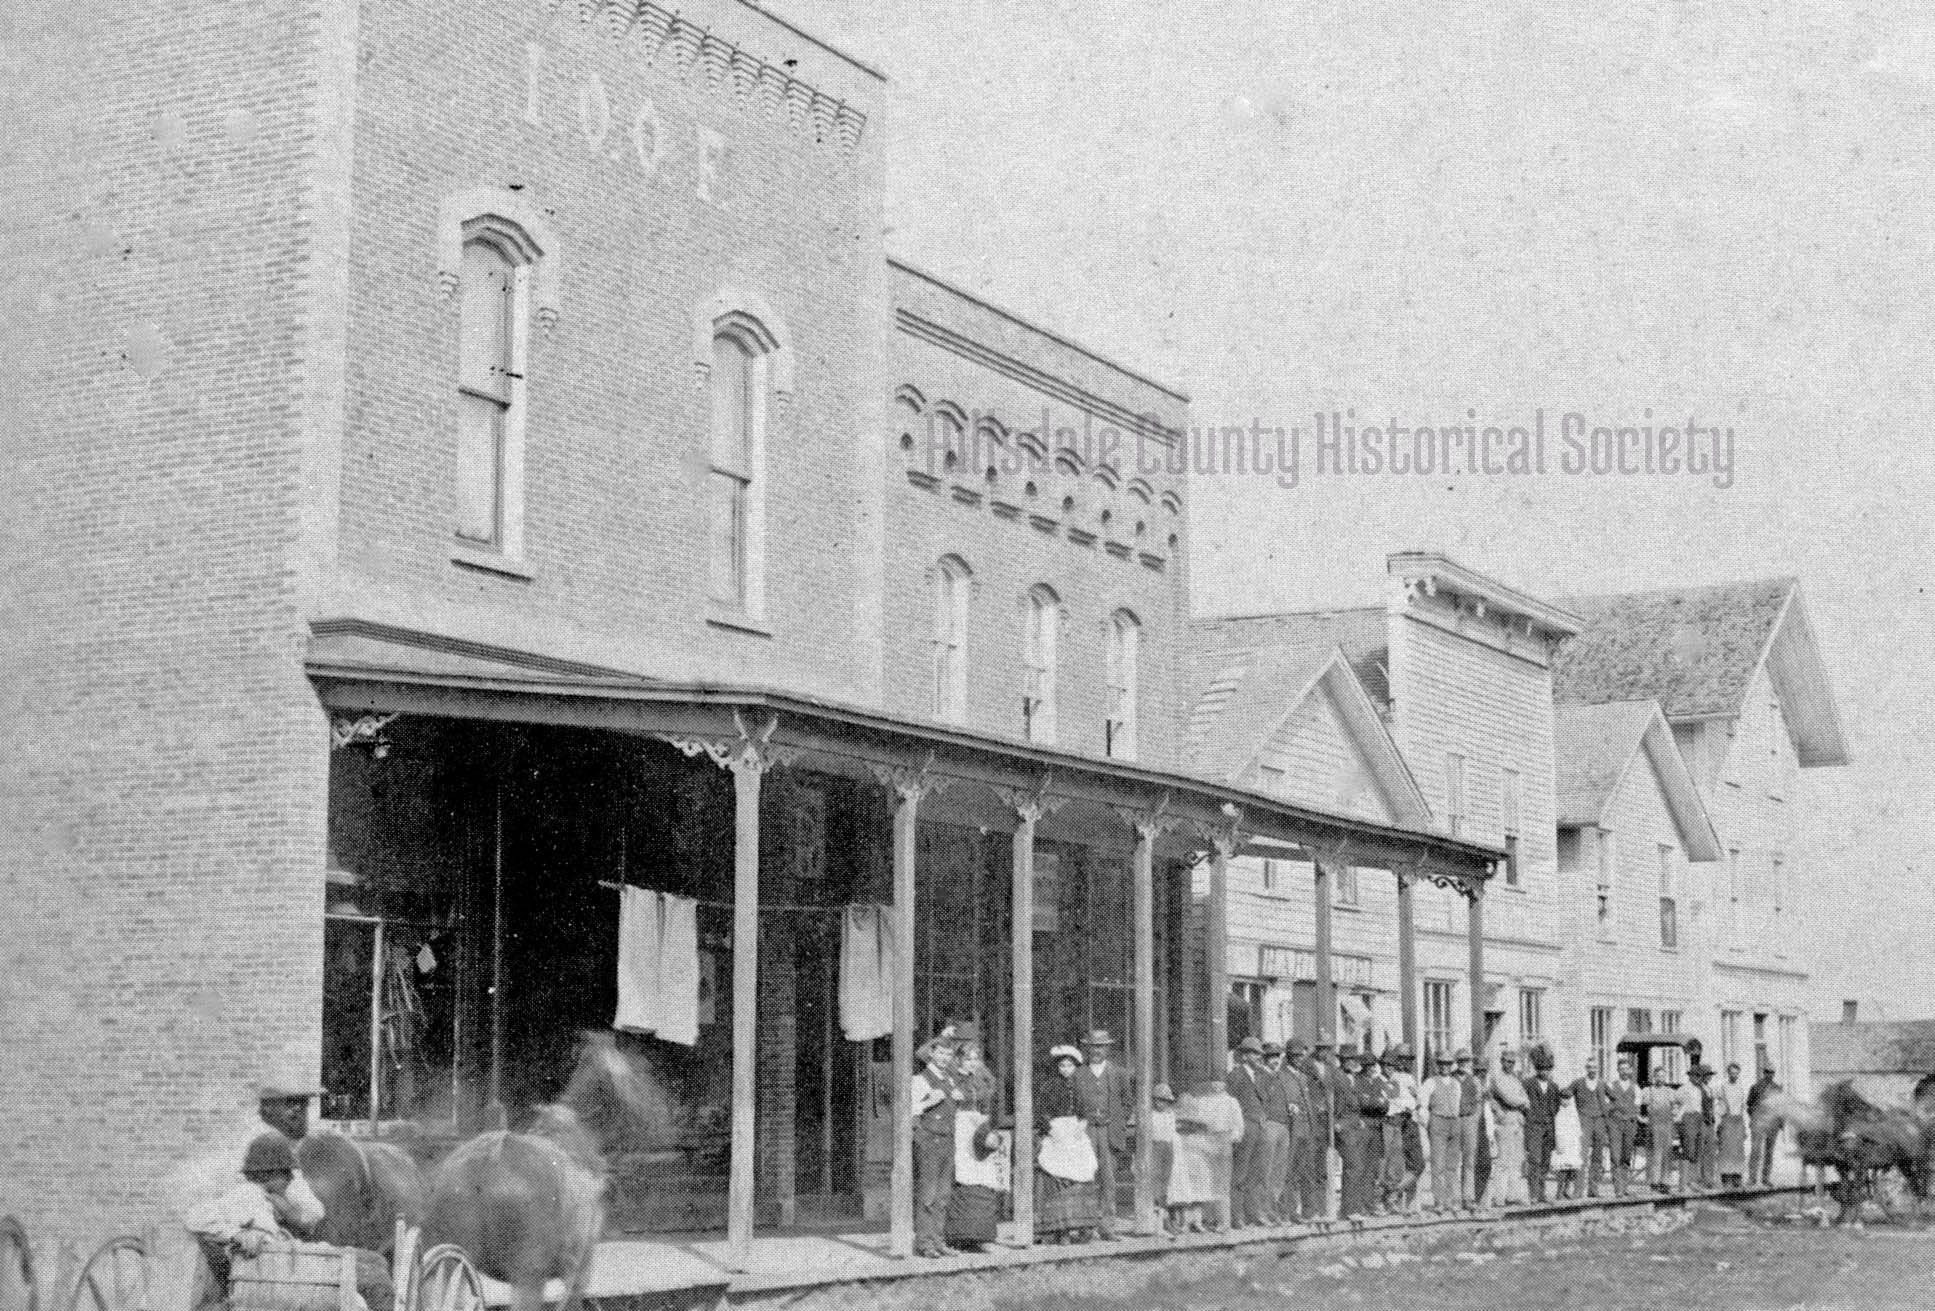 The west side of Main Street before the fire of 1895